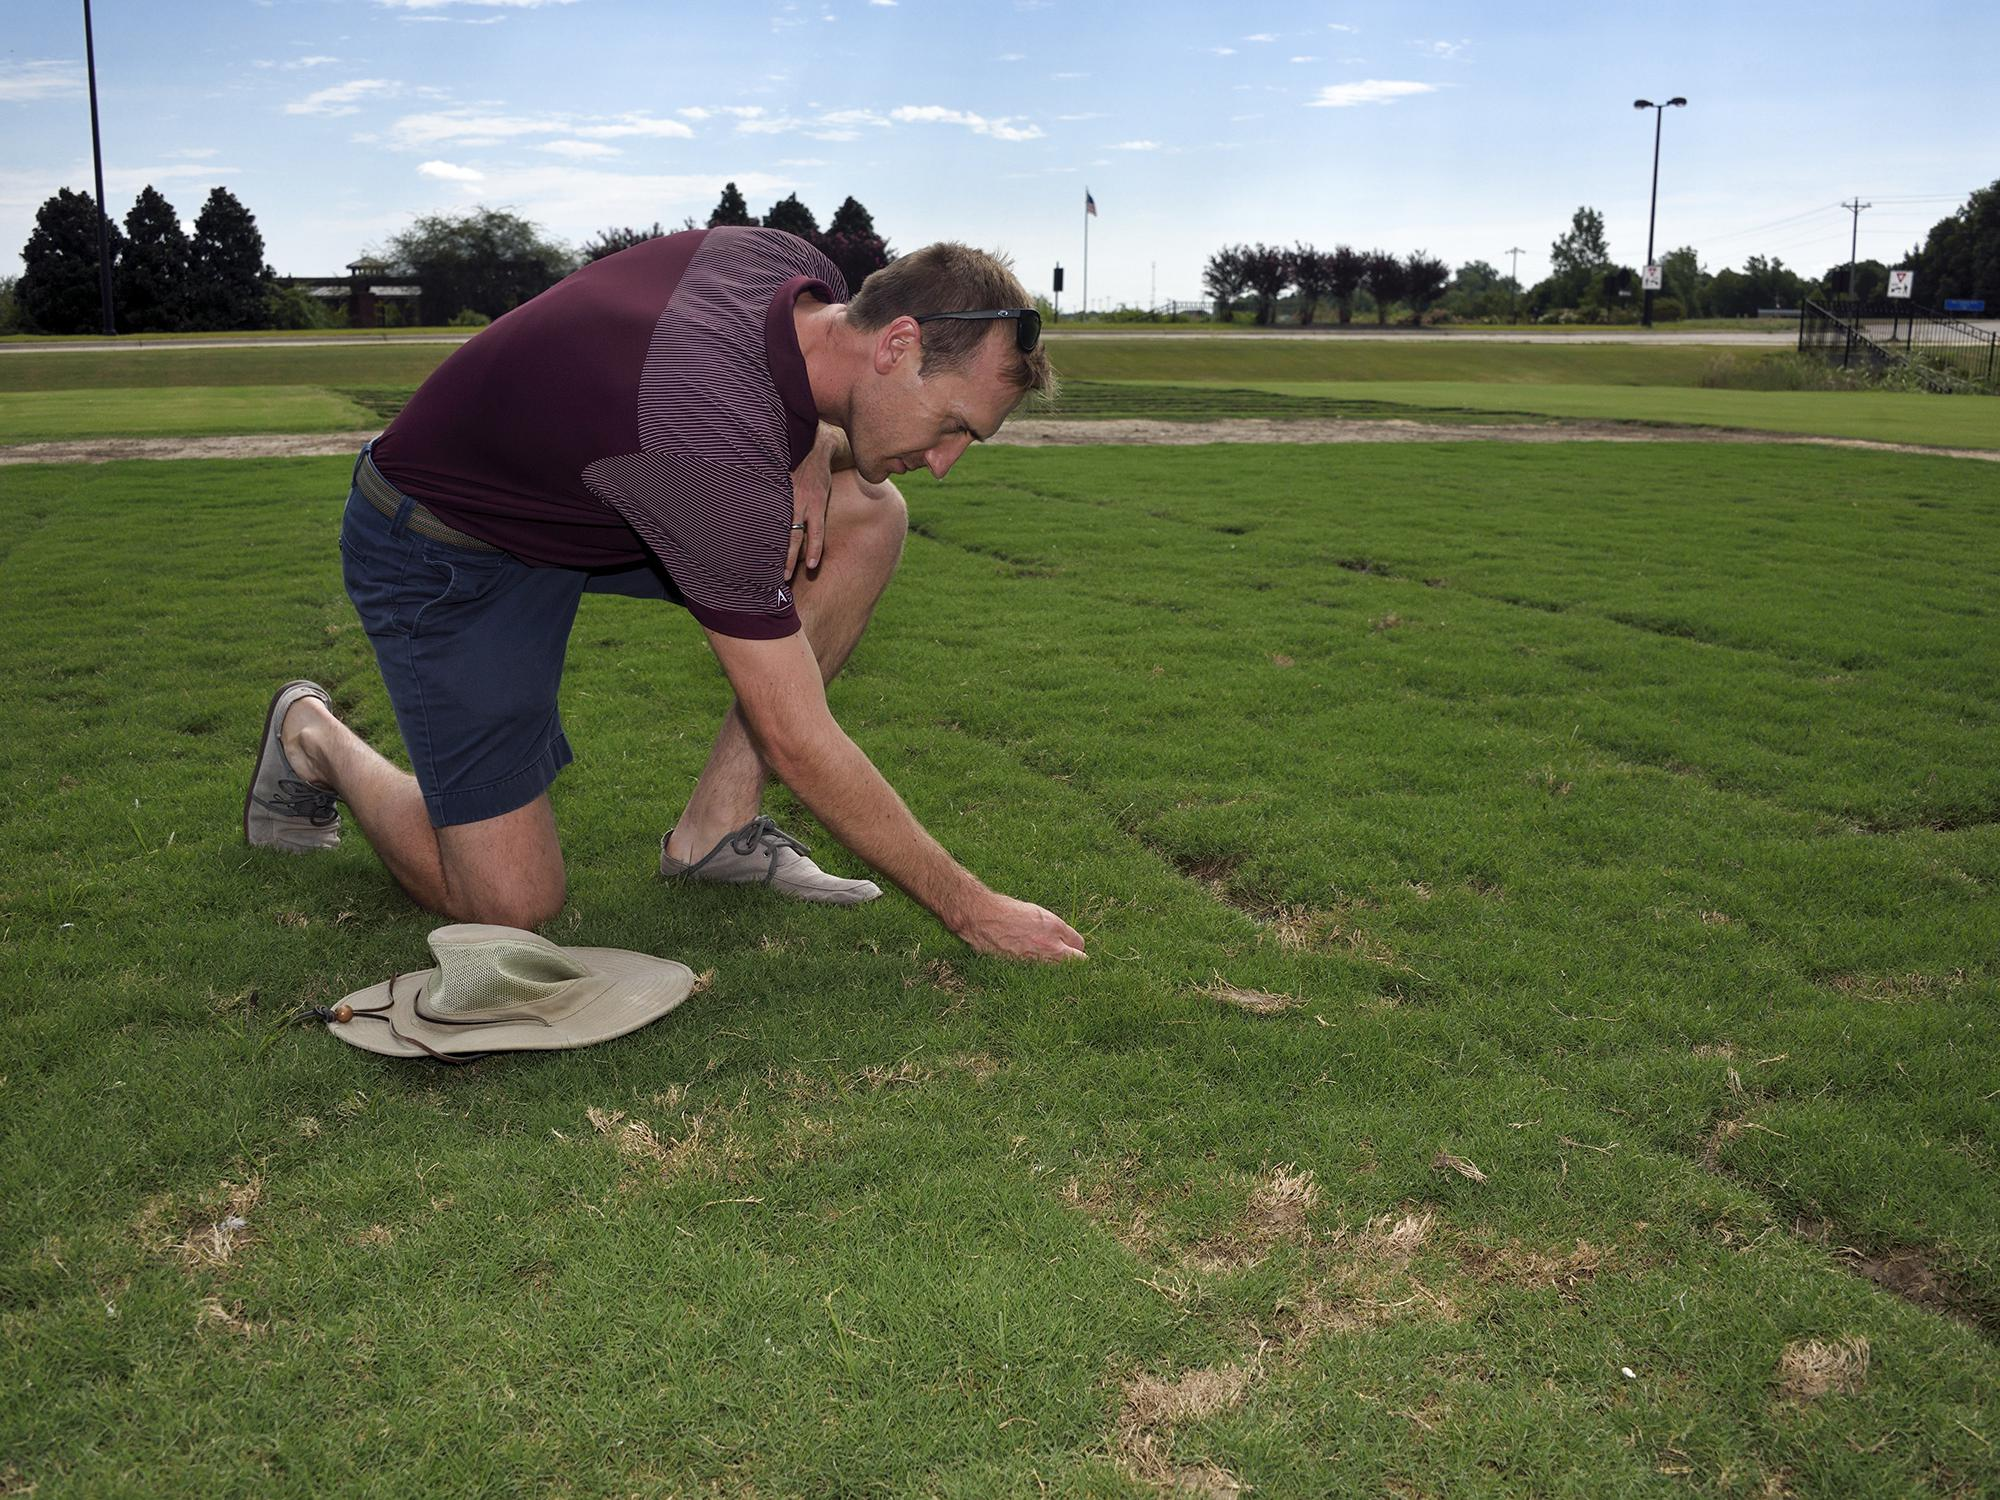 A hat rests on the ground next to a man kneeling down to examine grass.